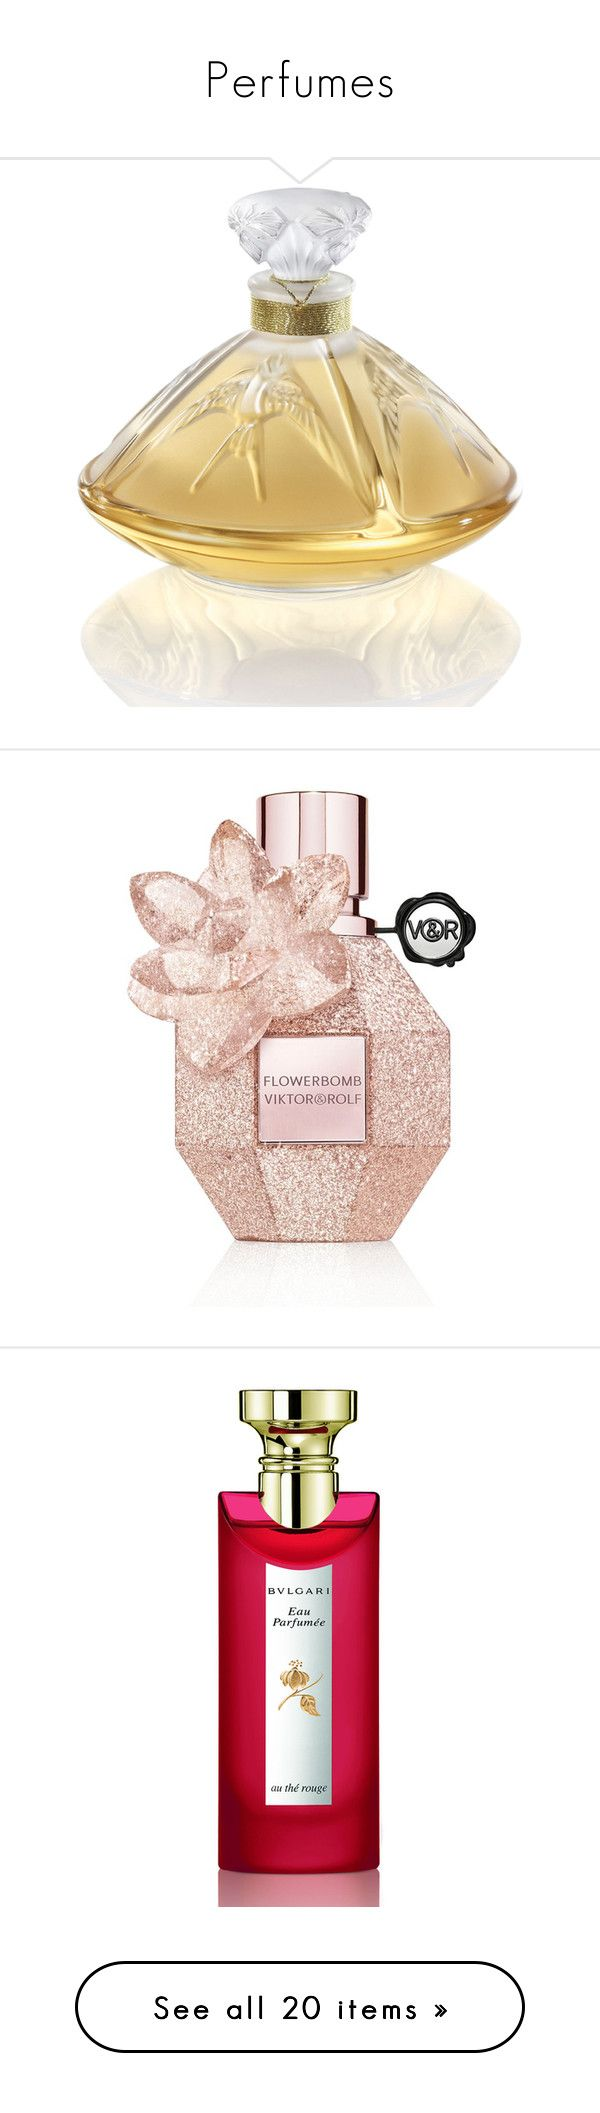 """""""Perfumes"""" by jaquemel ❤ liked on Polyvore featuring beauty products, fragrance, perfume, makeup, parfum, parfum fragrance, lalique, lalique perfume, lalique fragrance and perfume fragrance"""